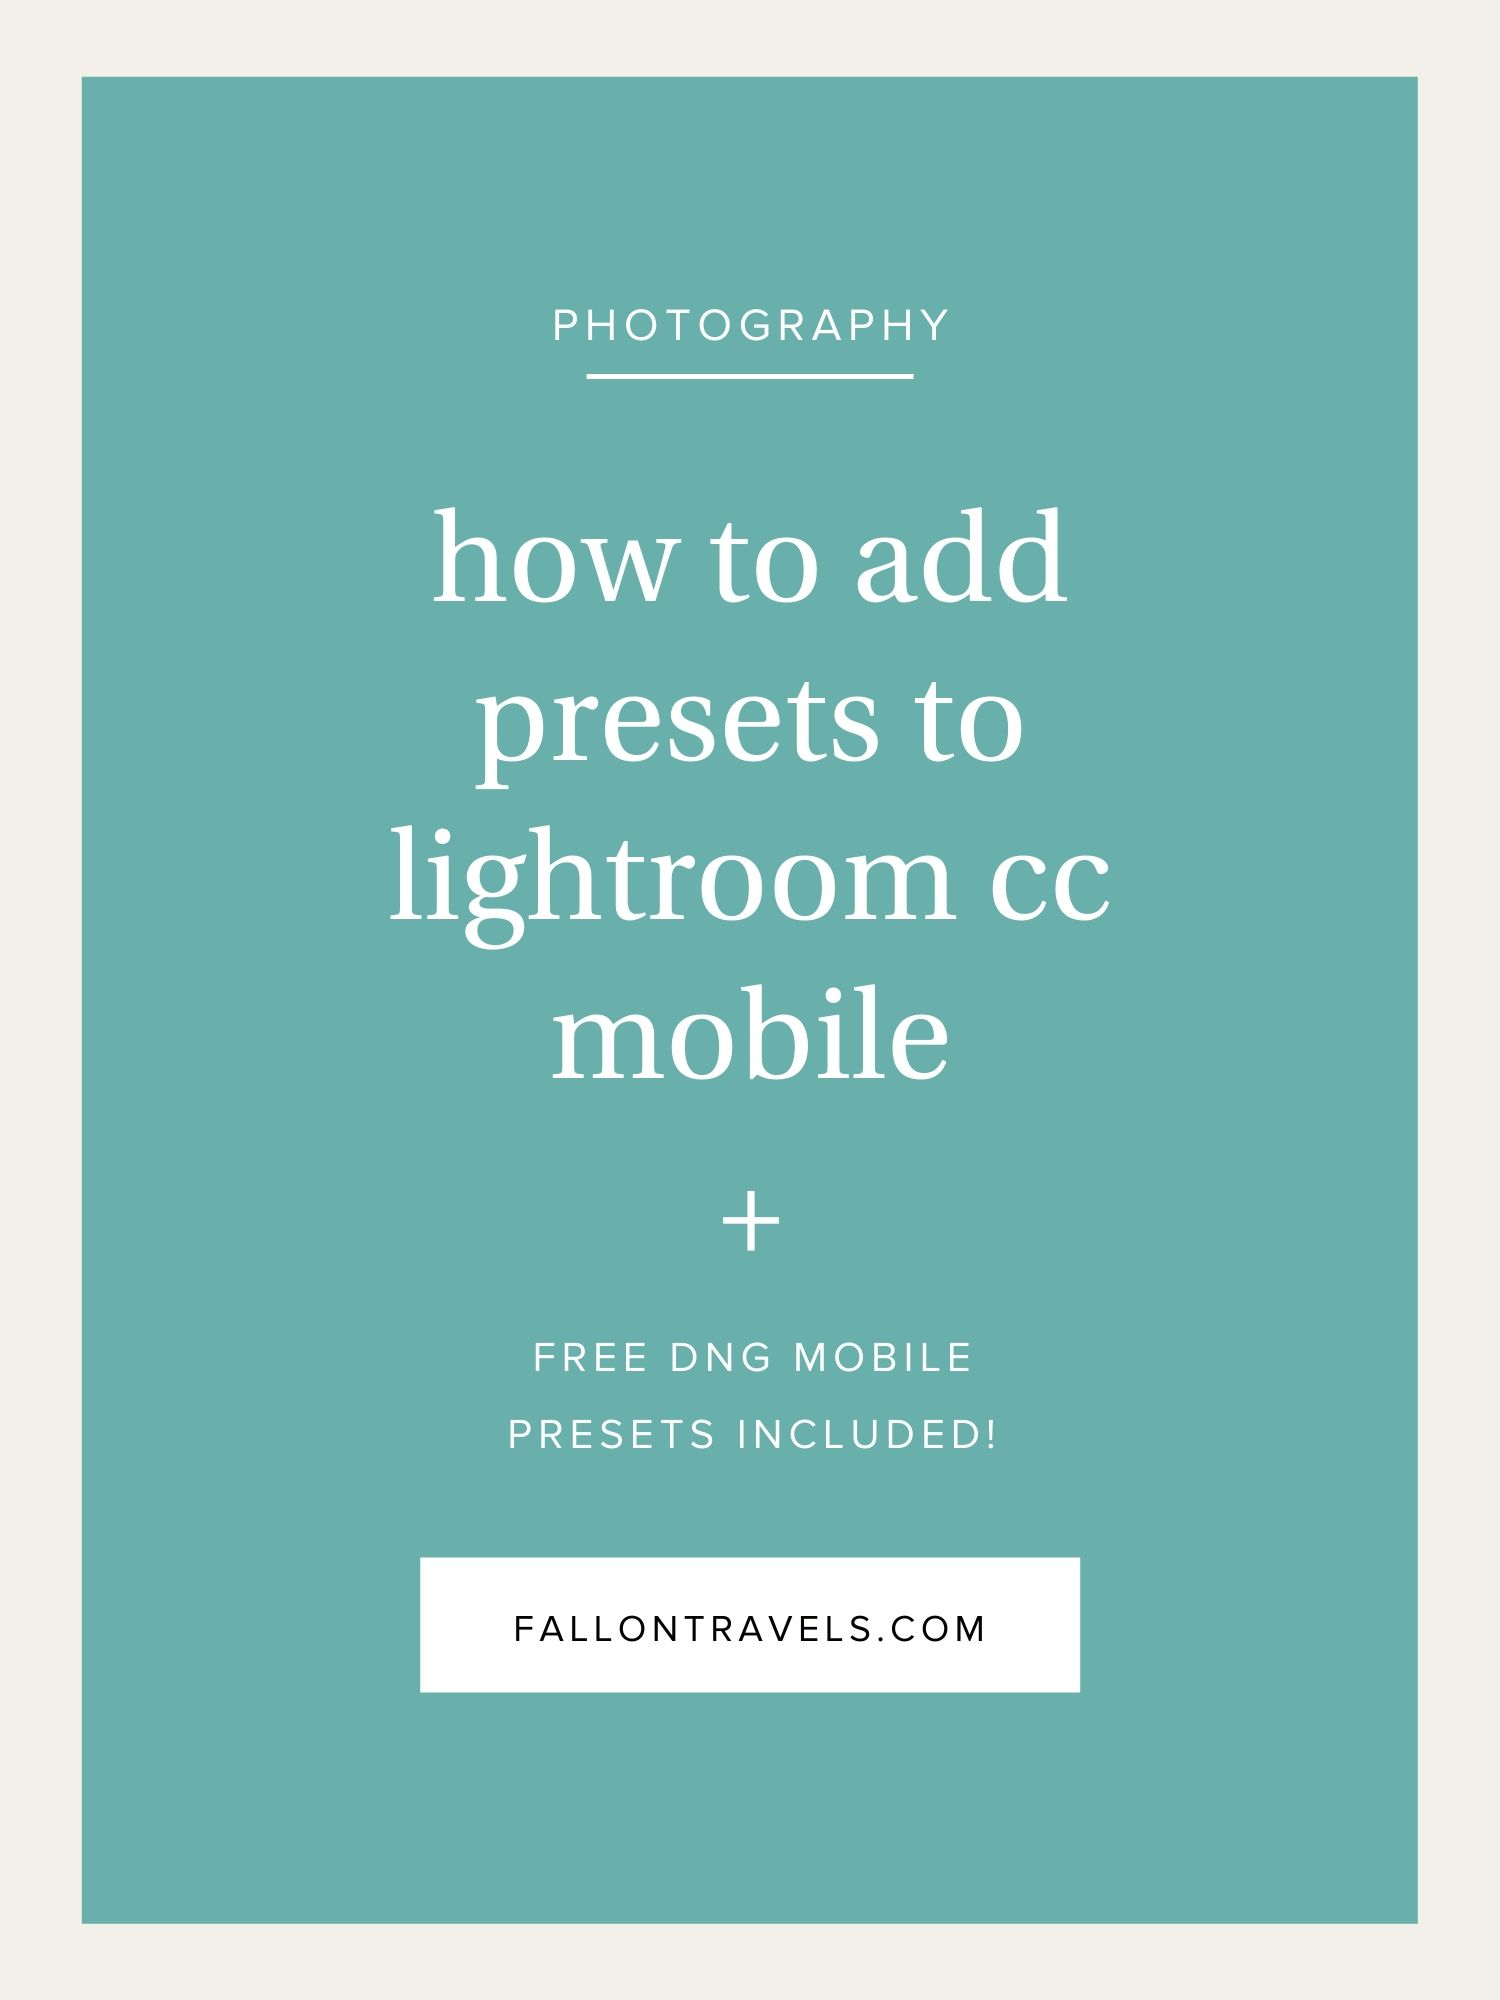 How to install free lightroom presets on iphone   Peatix